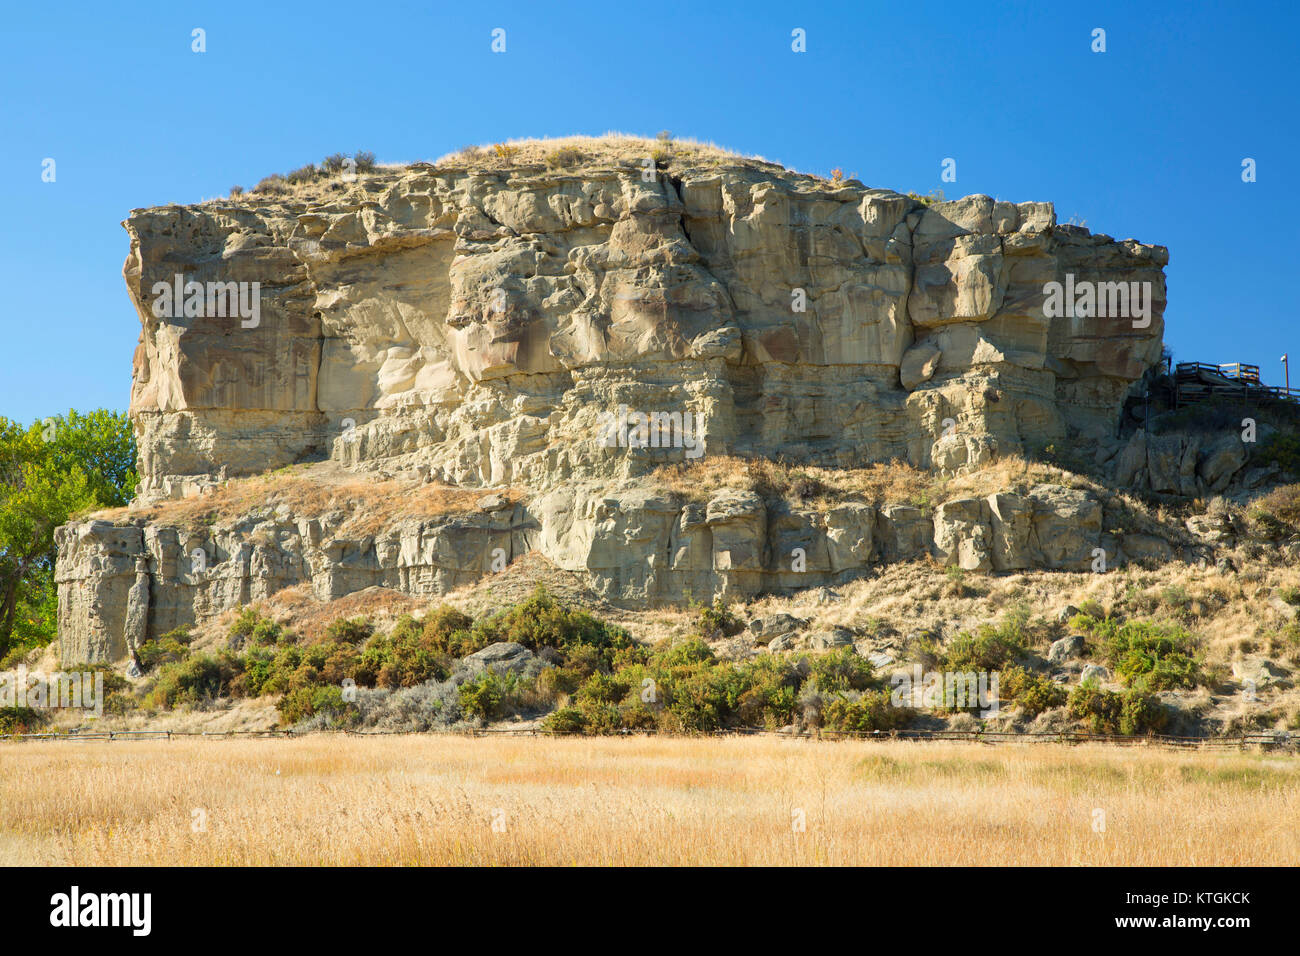 pompeys pillar chatrooms Find the perfect pompeys pillar stock photo huge collection, amazing choice, 100+ million high quality, affordable rf and rm images no need to register, buy now.